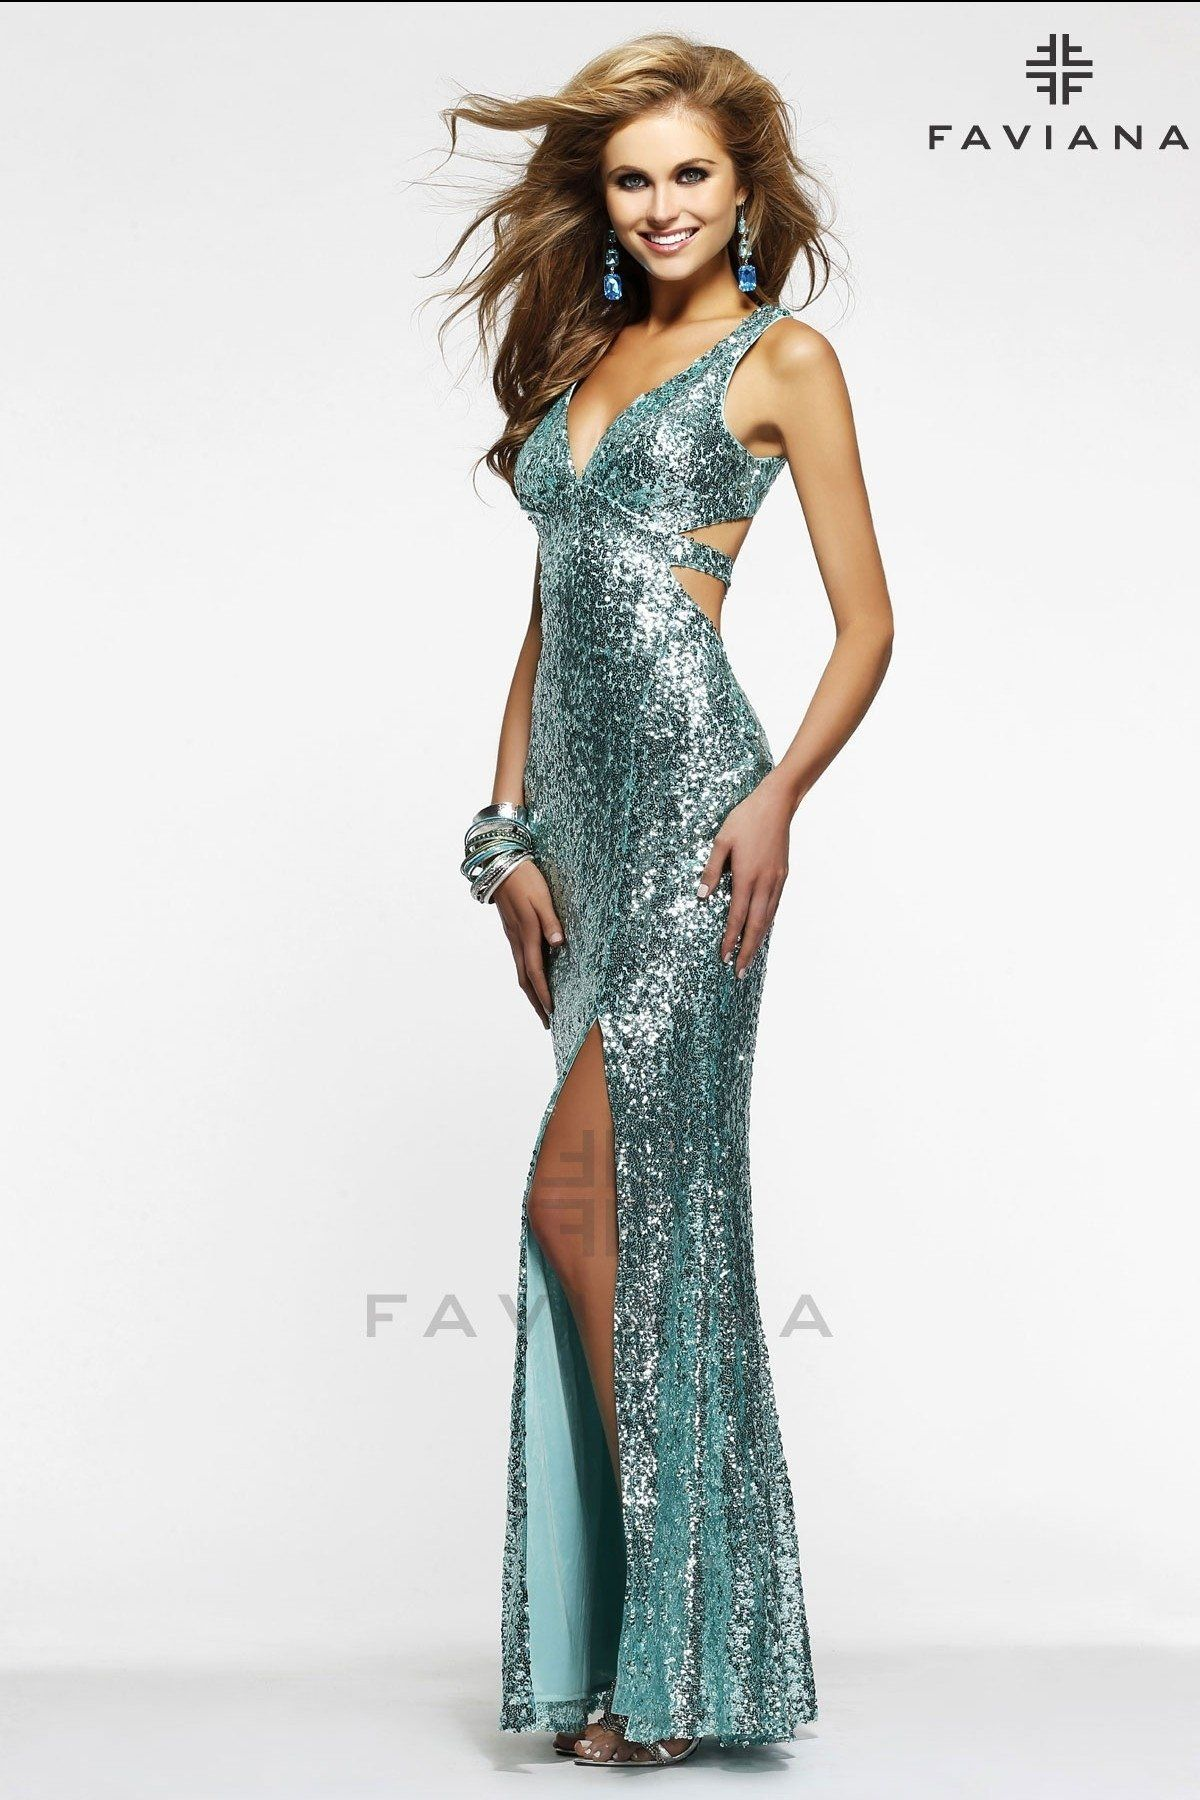 e58daae9 Faviana Style 7313 CUT OUT SEQUIN FEATURING A LOW BACK Shine bright in this  brilliant evening gown from Faviana 7313. The plunging v-neckline bodice  has ...